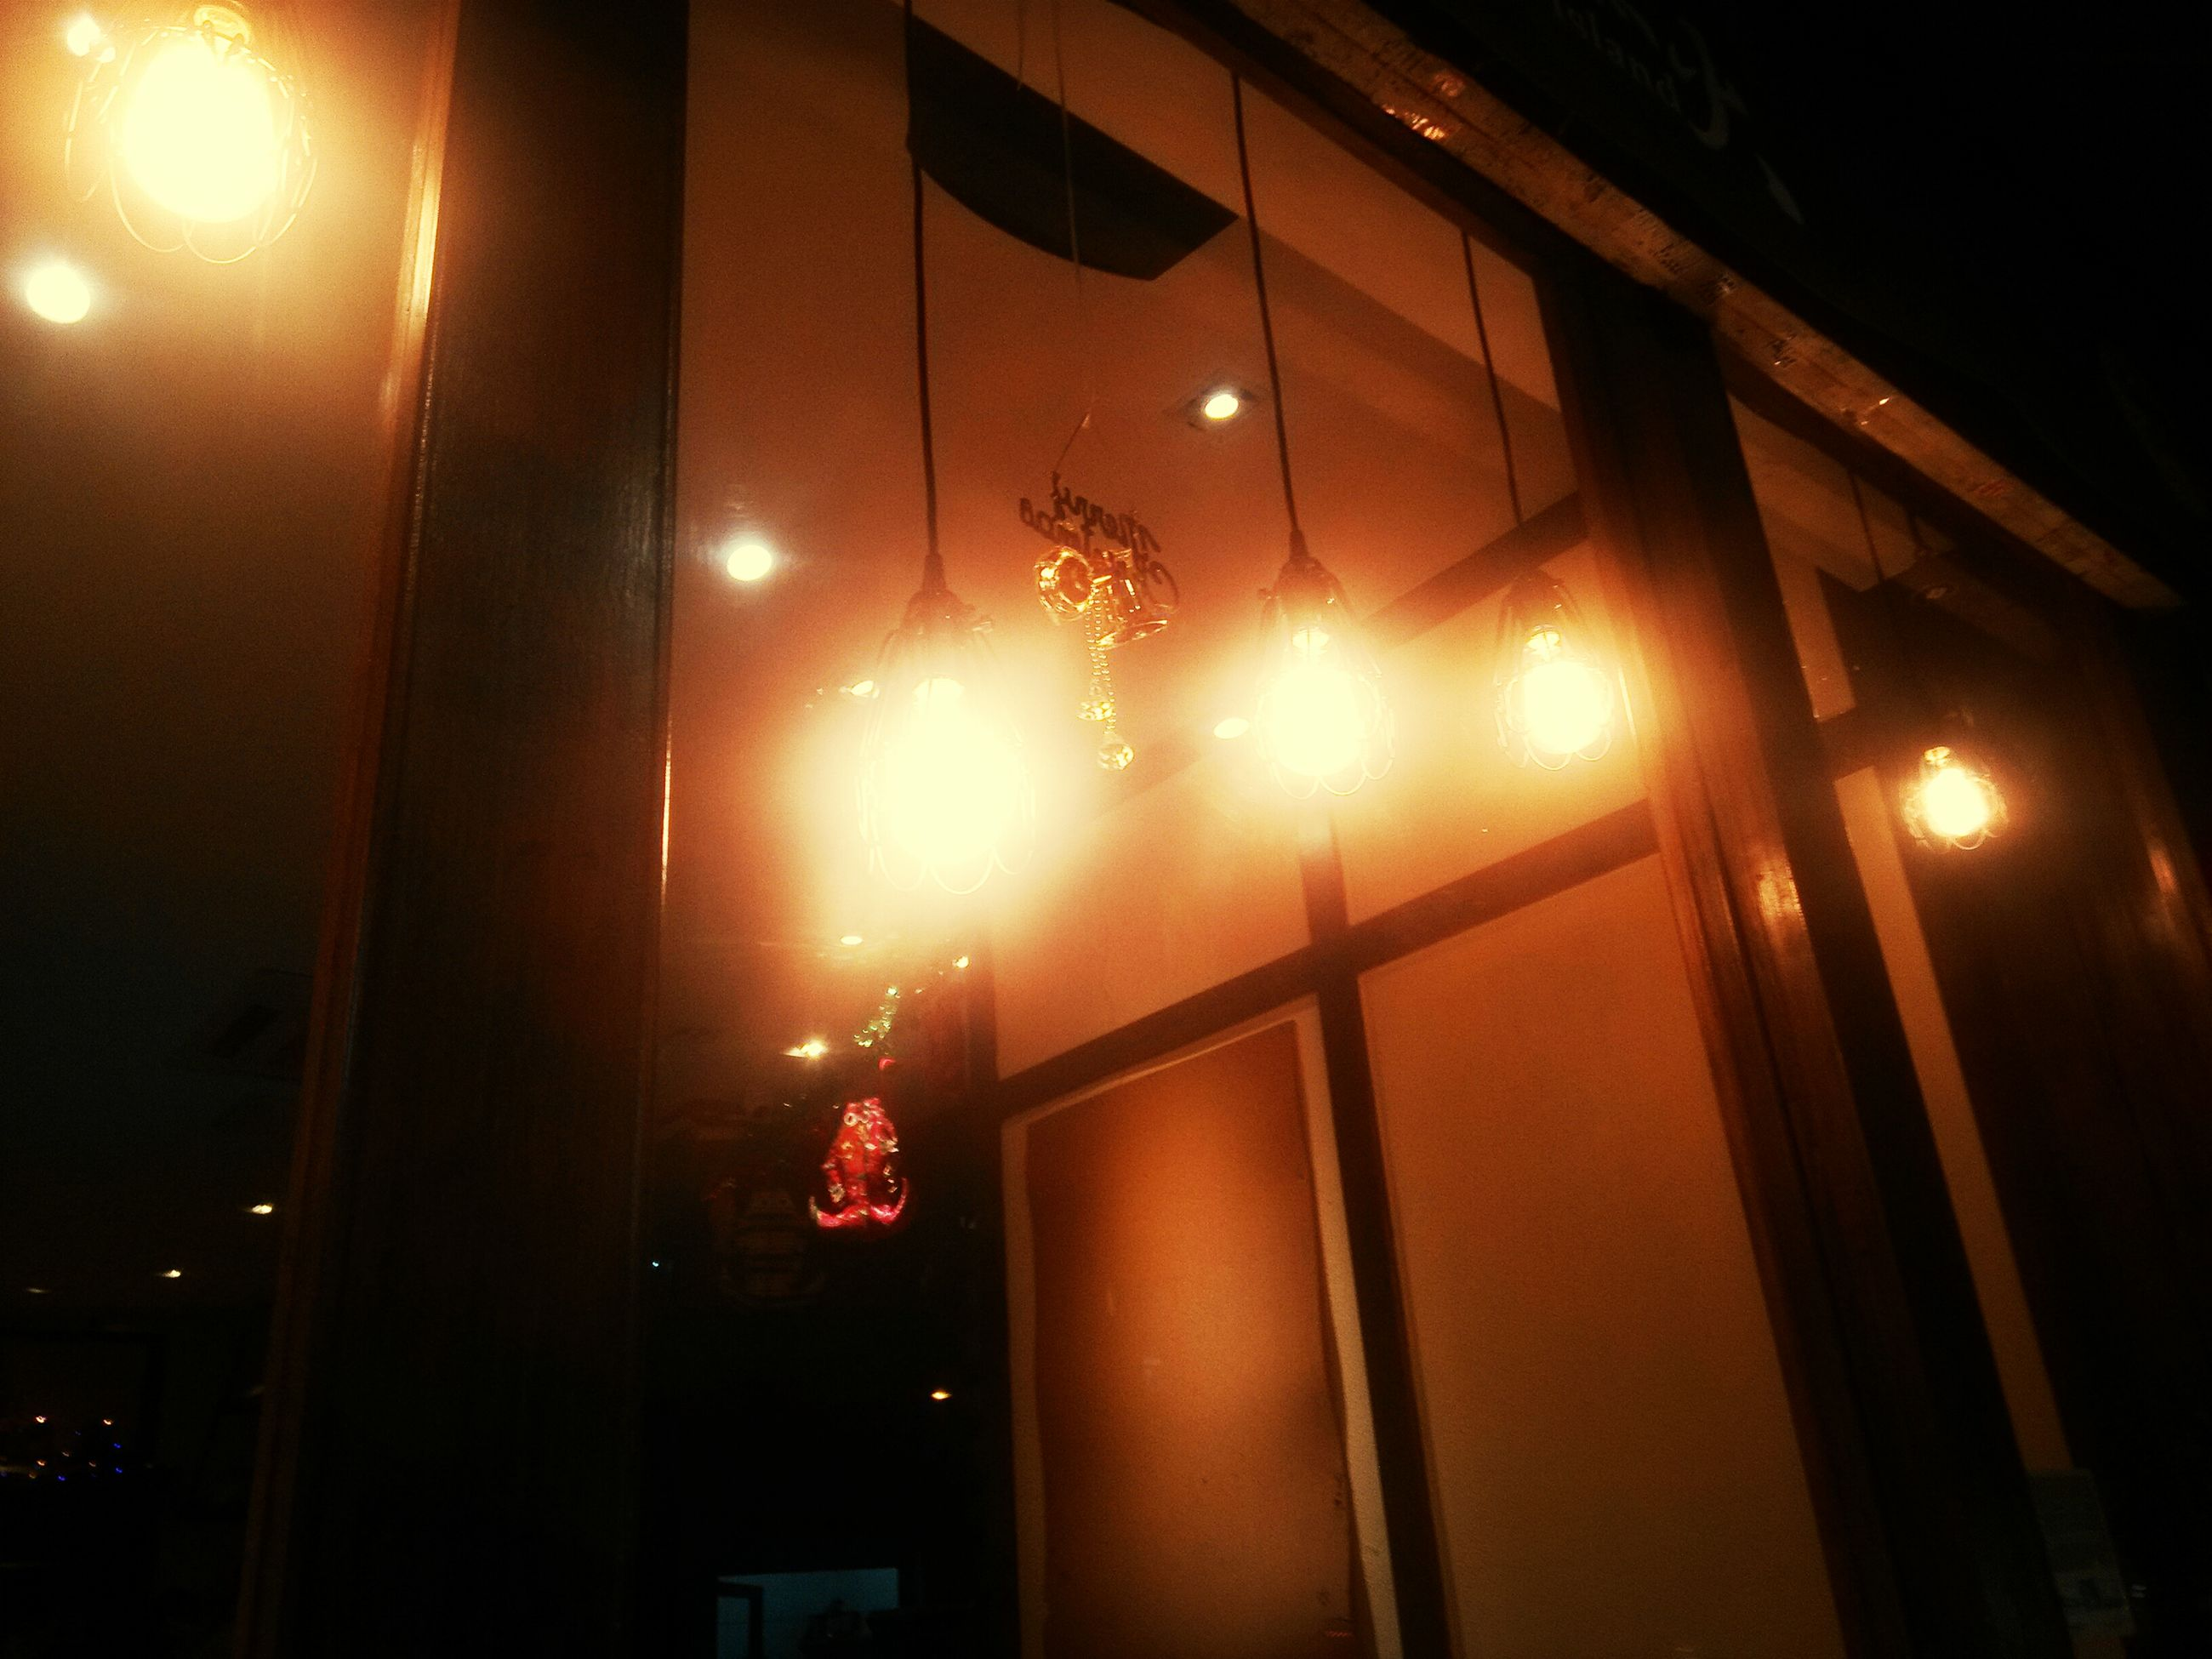 illuminated, night, lighting equipment, indoors, light - natural phenomenon, glowing, window, built structure, architecture, red, lens flare, electric light, glass - material, low angle view, street light, no people, dark, electricity, light beam, lit